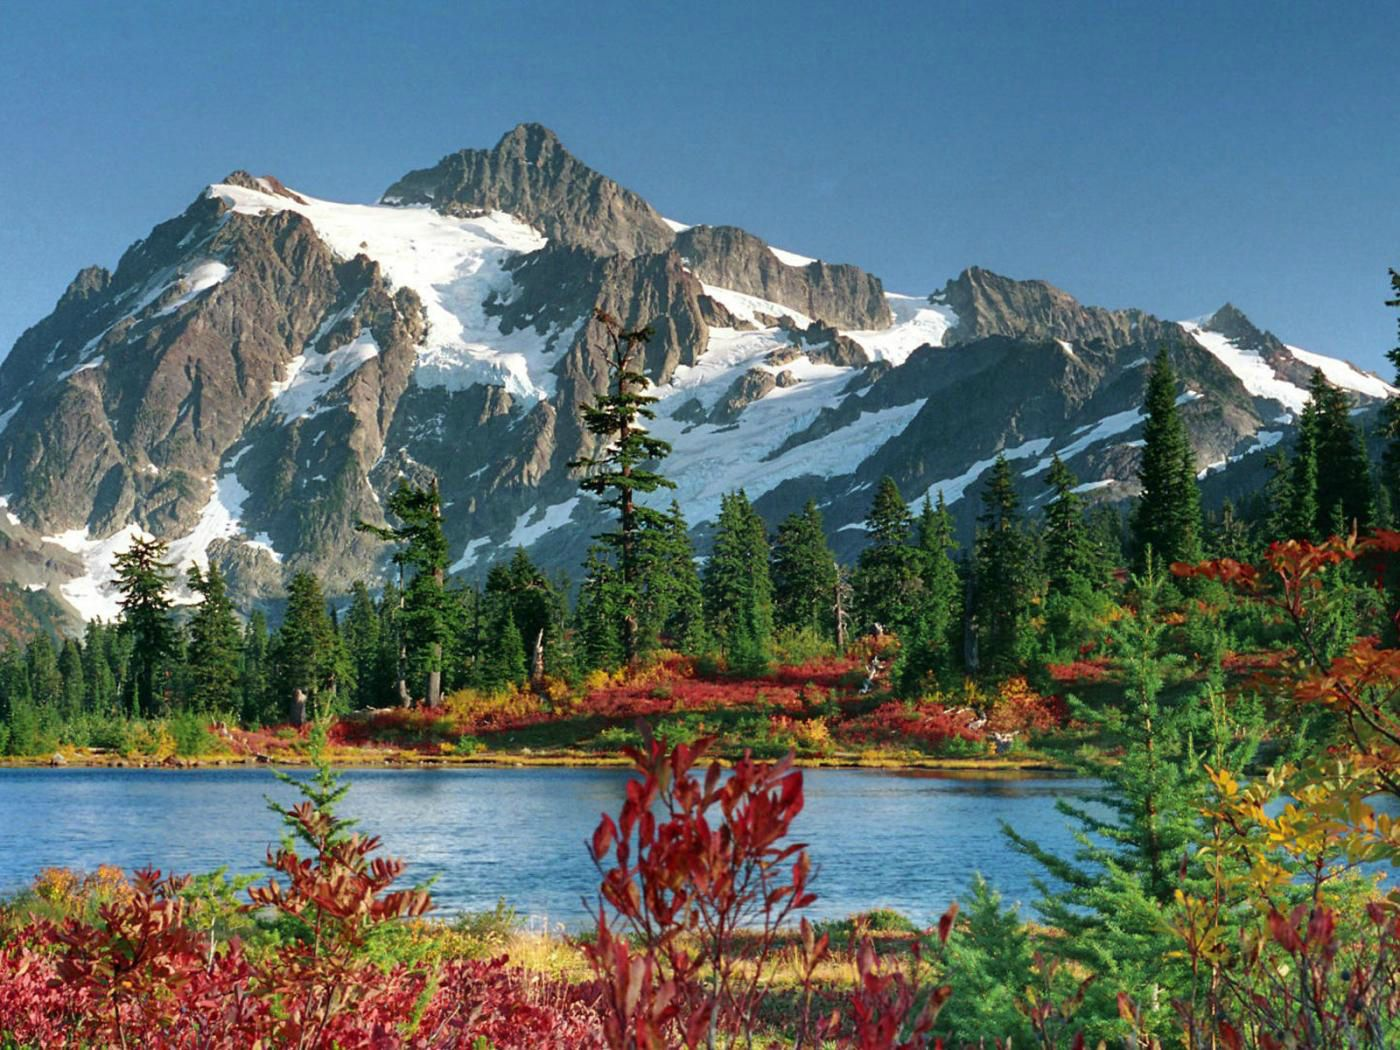 mount-baker-snoqualmie-national-forest-park-1050x1400